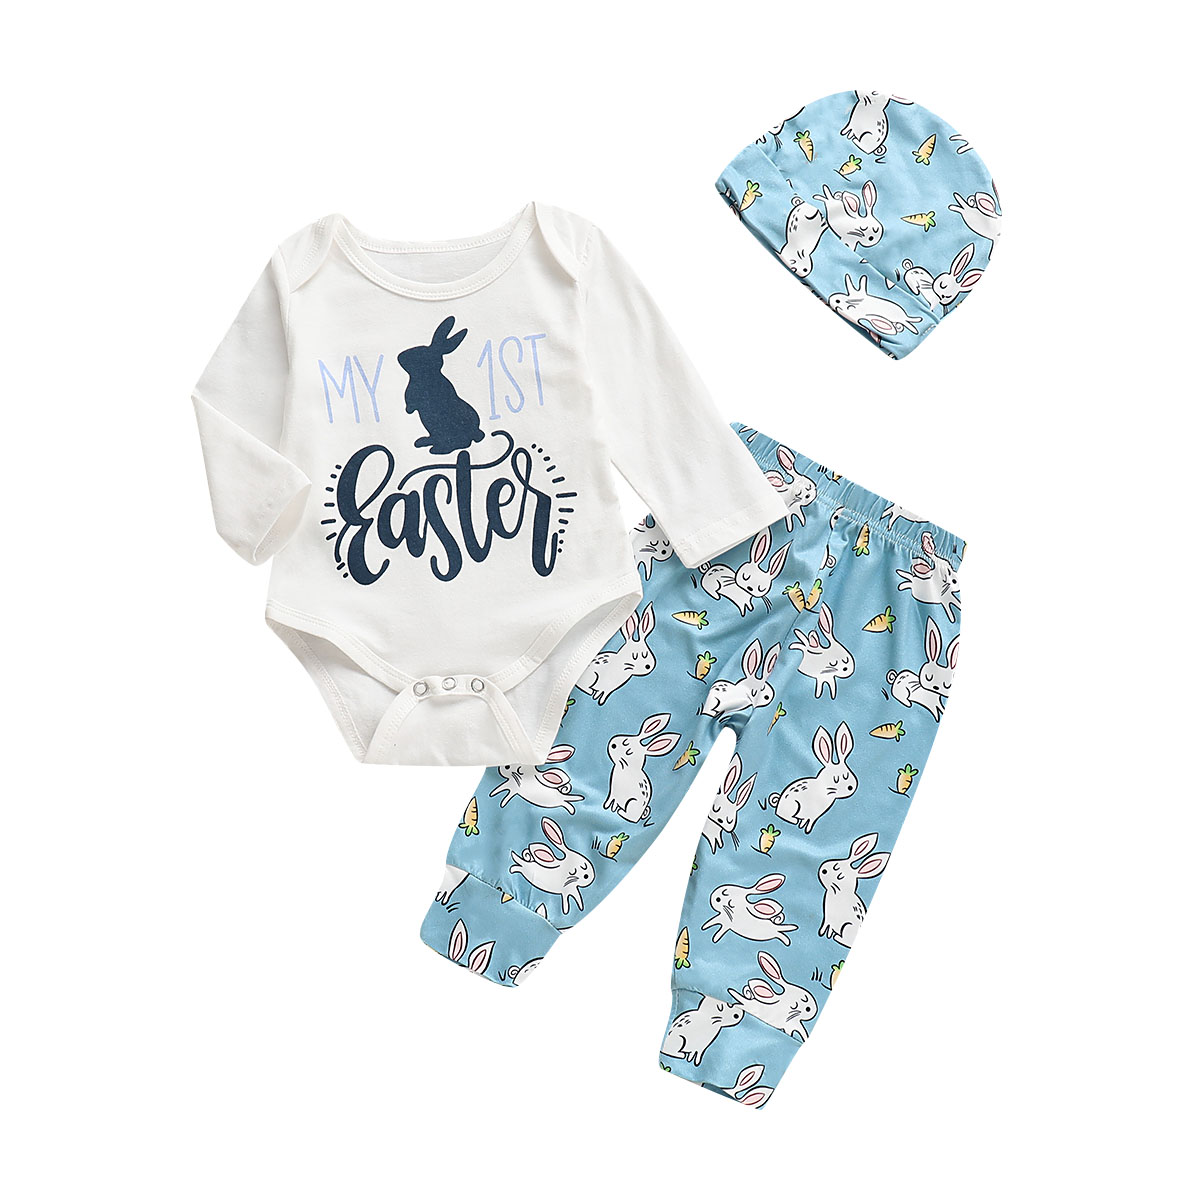 US My 1st Easter Newborn Baby Boy Girl Romper+Long Pants+Hat 3PCS Outfit Clothes